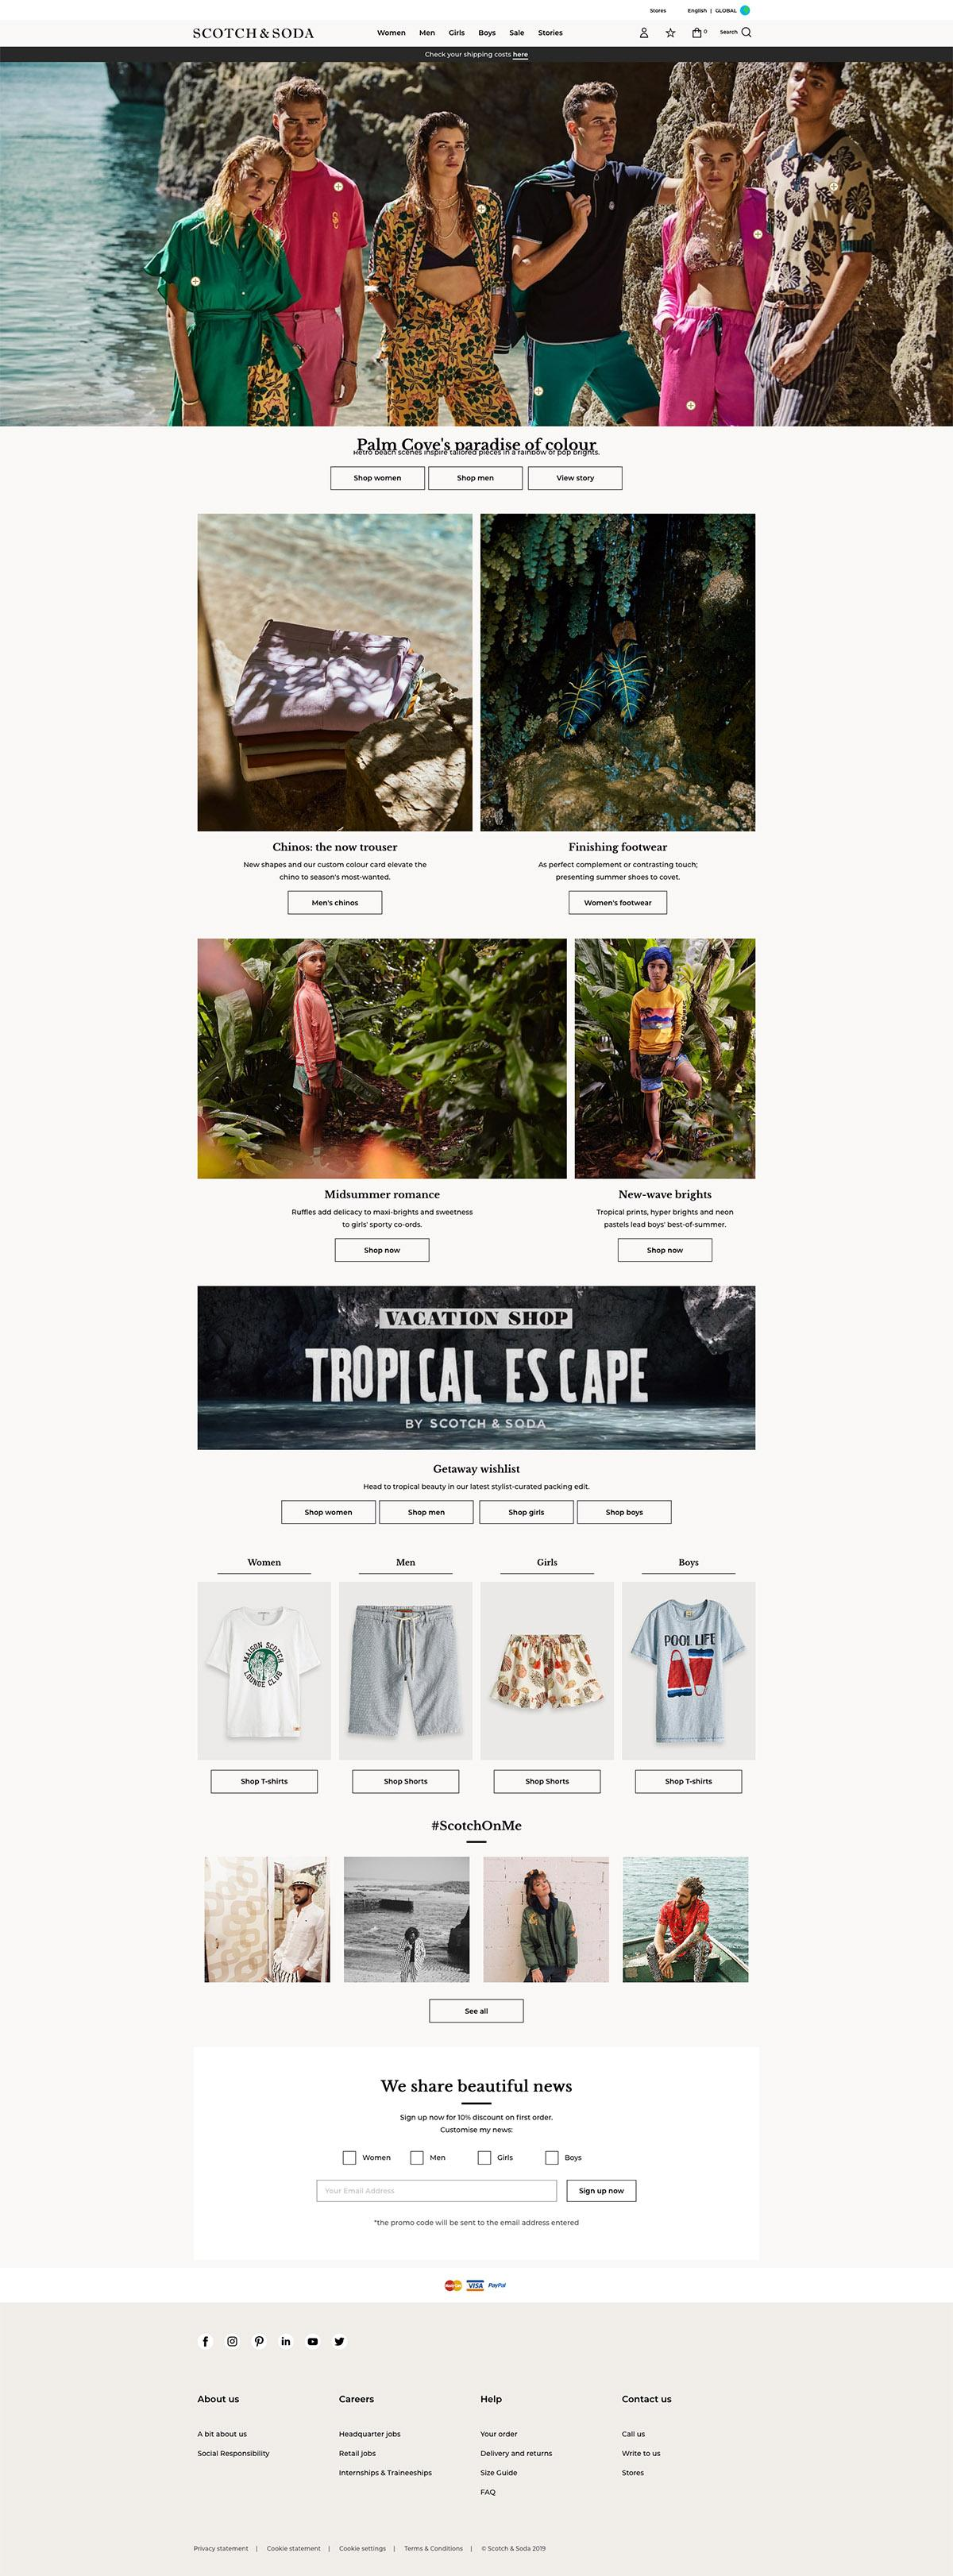 eCommerce website: Scotch & Soda